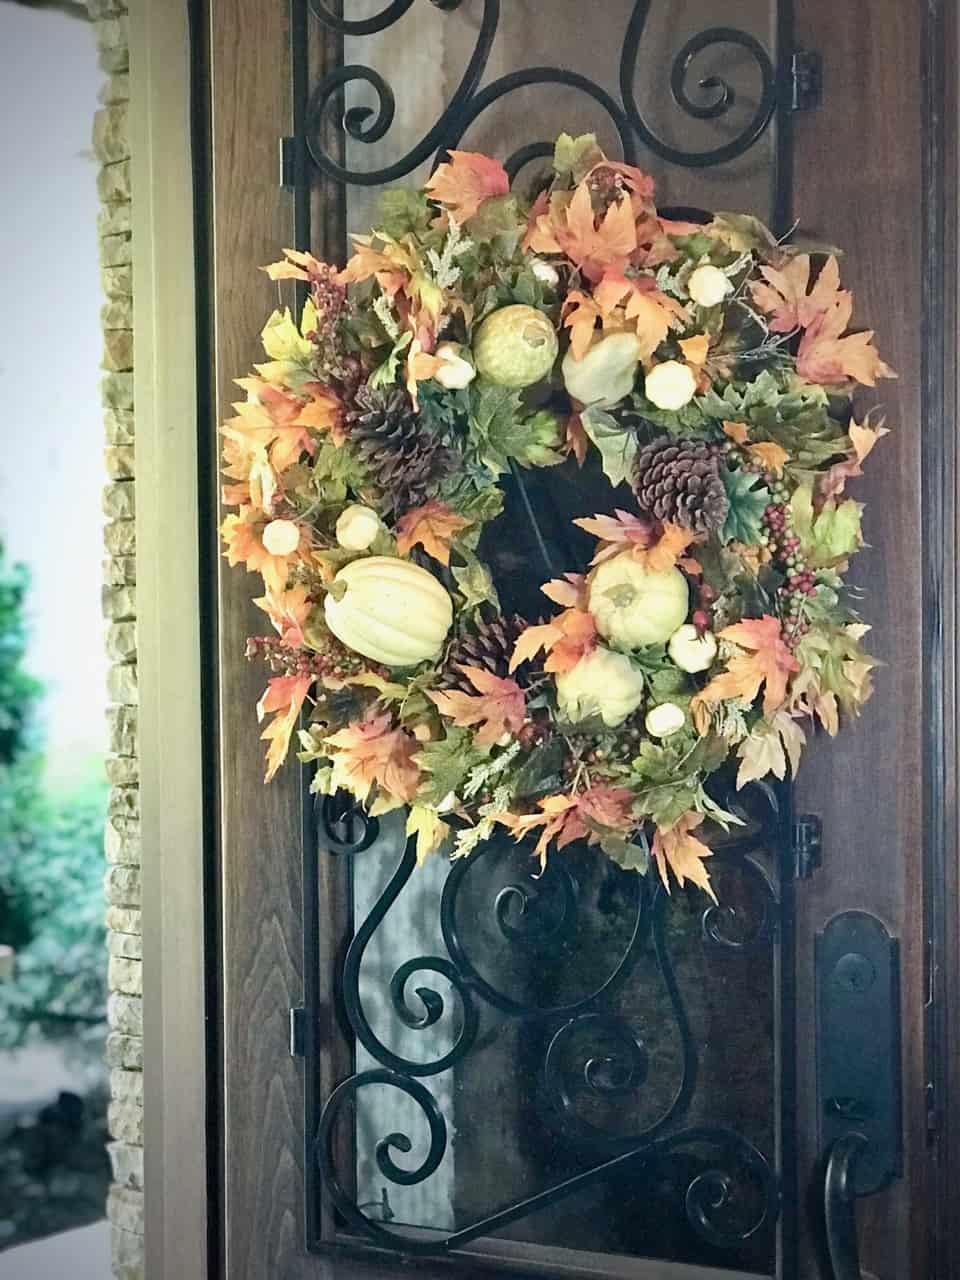 Festive Fall Harvest Home Decor Ideas DIY Derby Lane Dreams